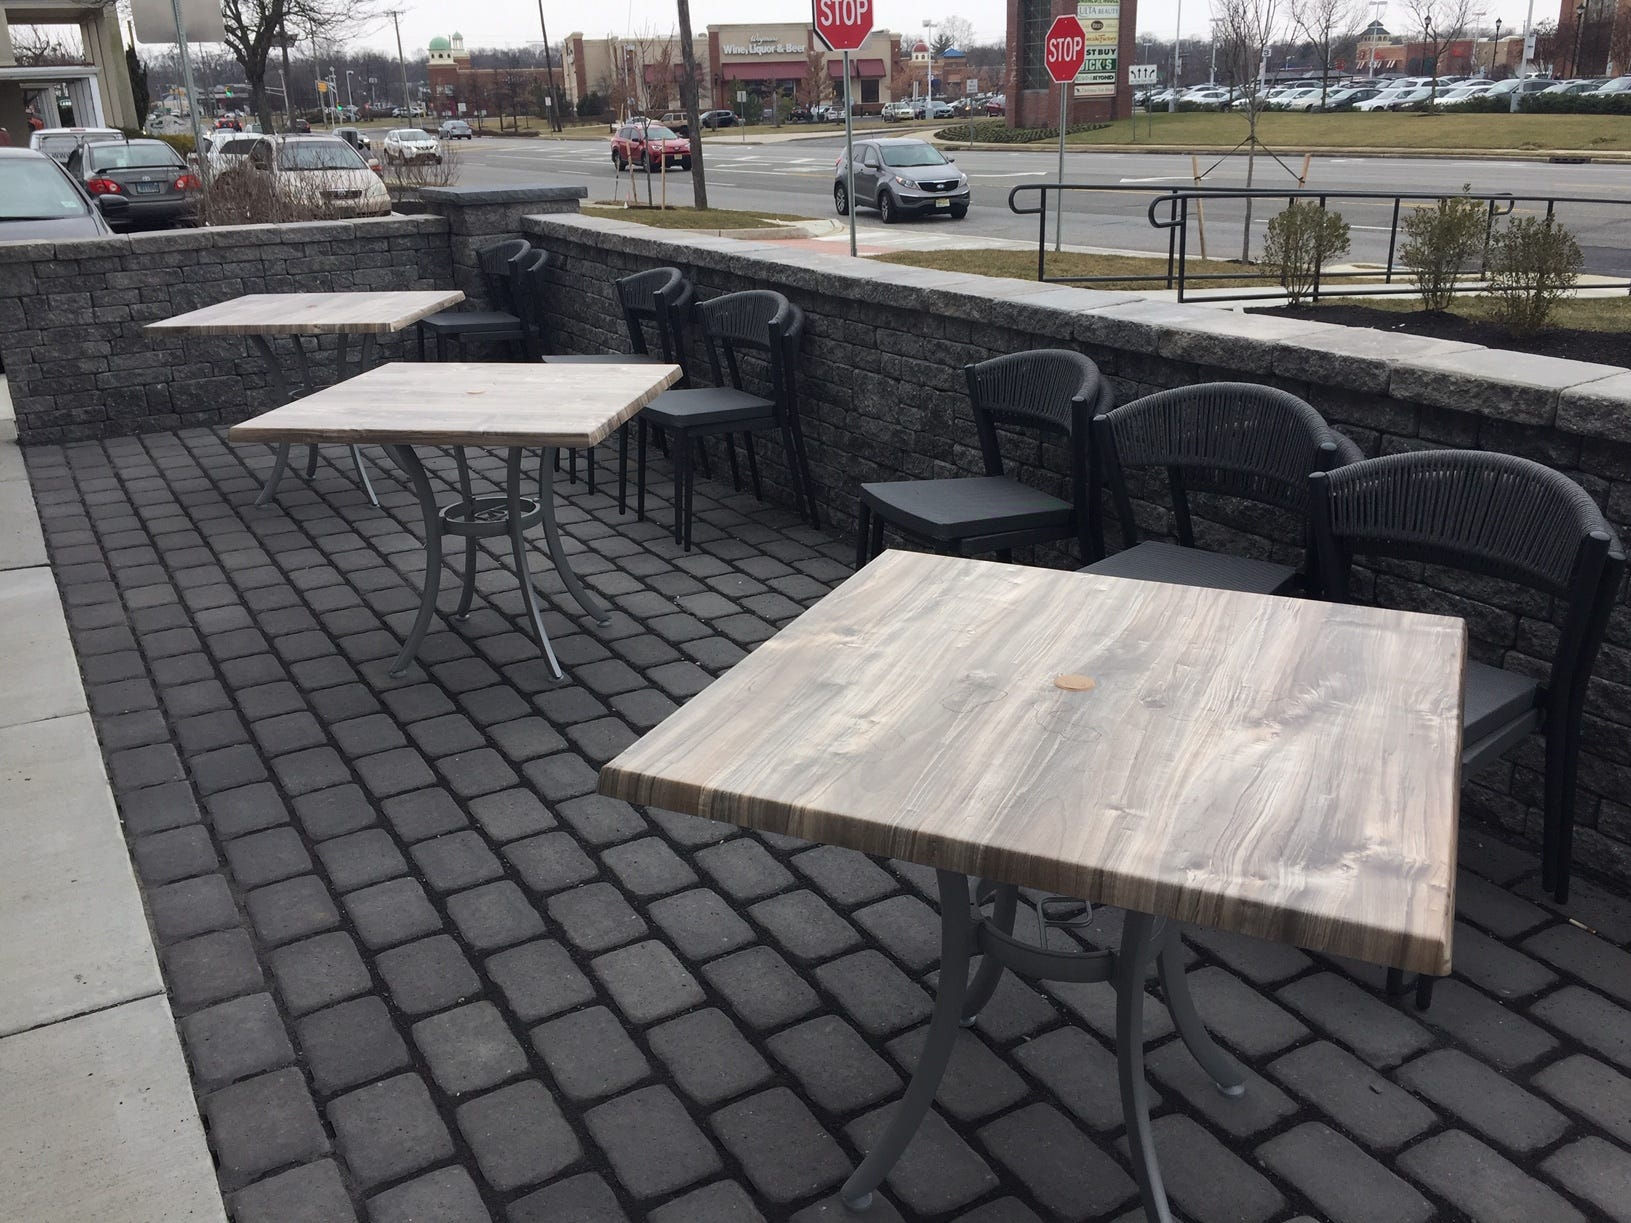 In warmer weather, First Watch in Cherry Hill will offer outdoor patio seating off Haddonfield Road.